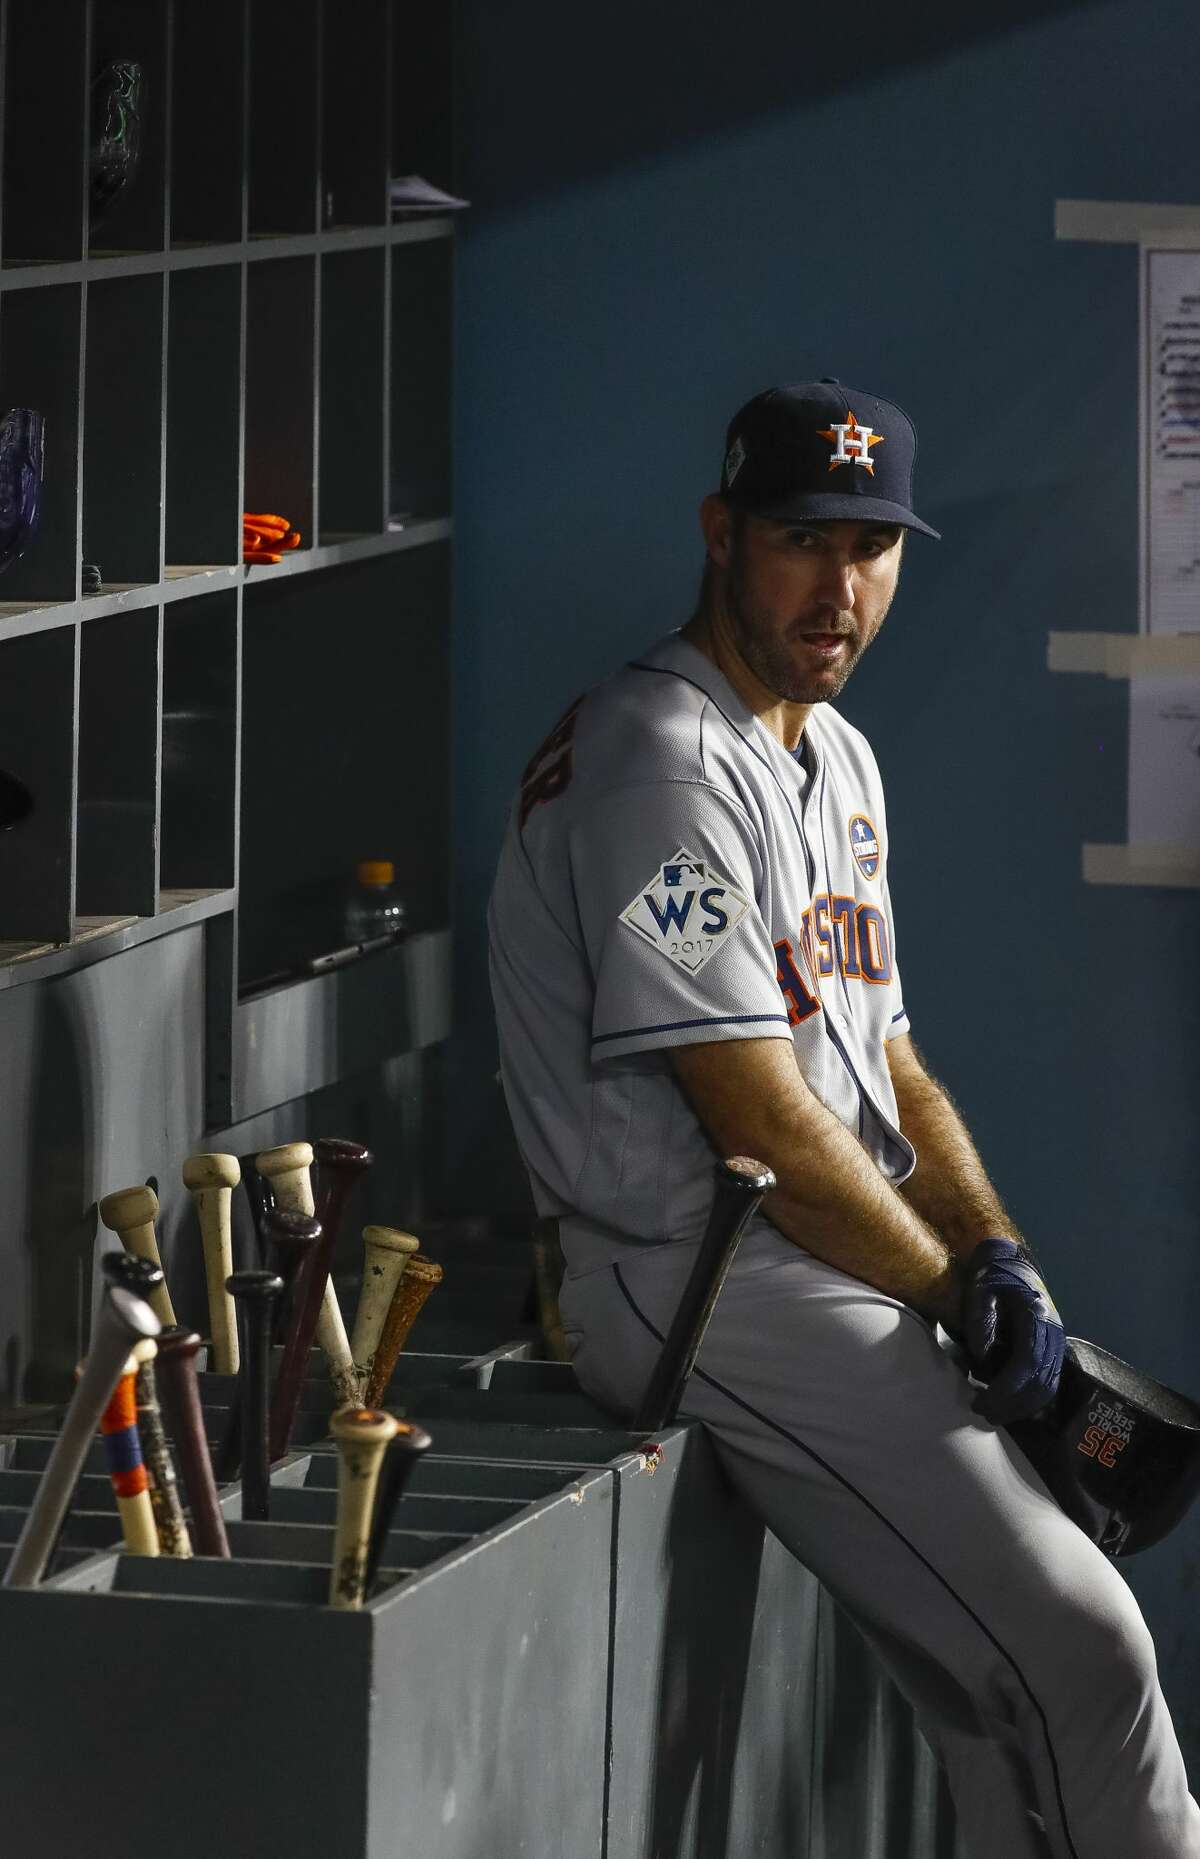 Houston Astros starting pitcher Justin Verlander (35) sits in the dugout after being pulled from Game 2 of the World Series at Dodger Stadium on Wednesday, Oct. 25, 2017, in Los Angeles.